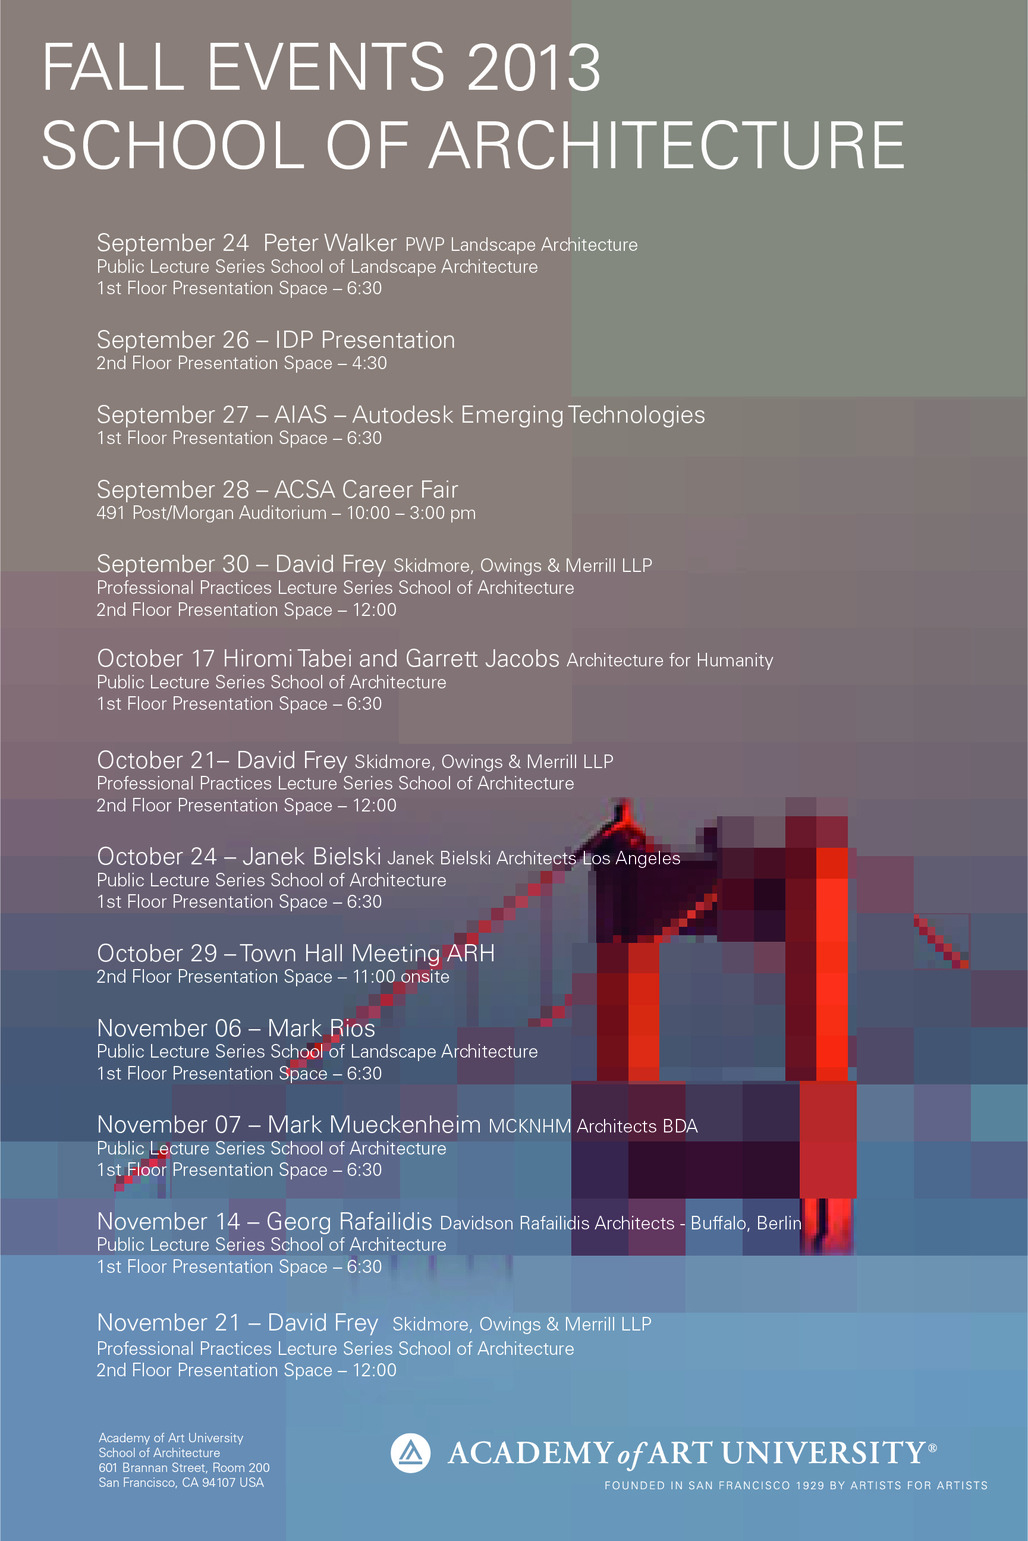 Fall 13 Events at the Academy of Art University School of Architecture. Image courtesy of Academy of Art University.